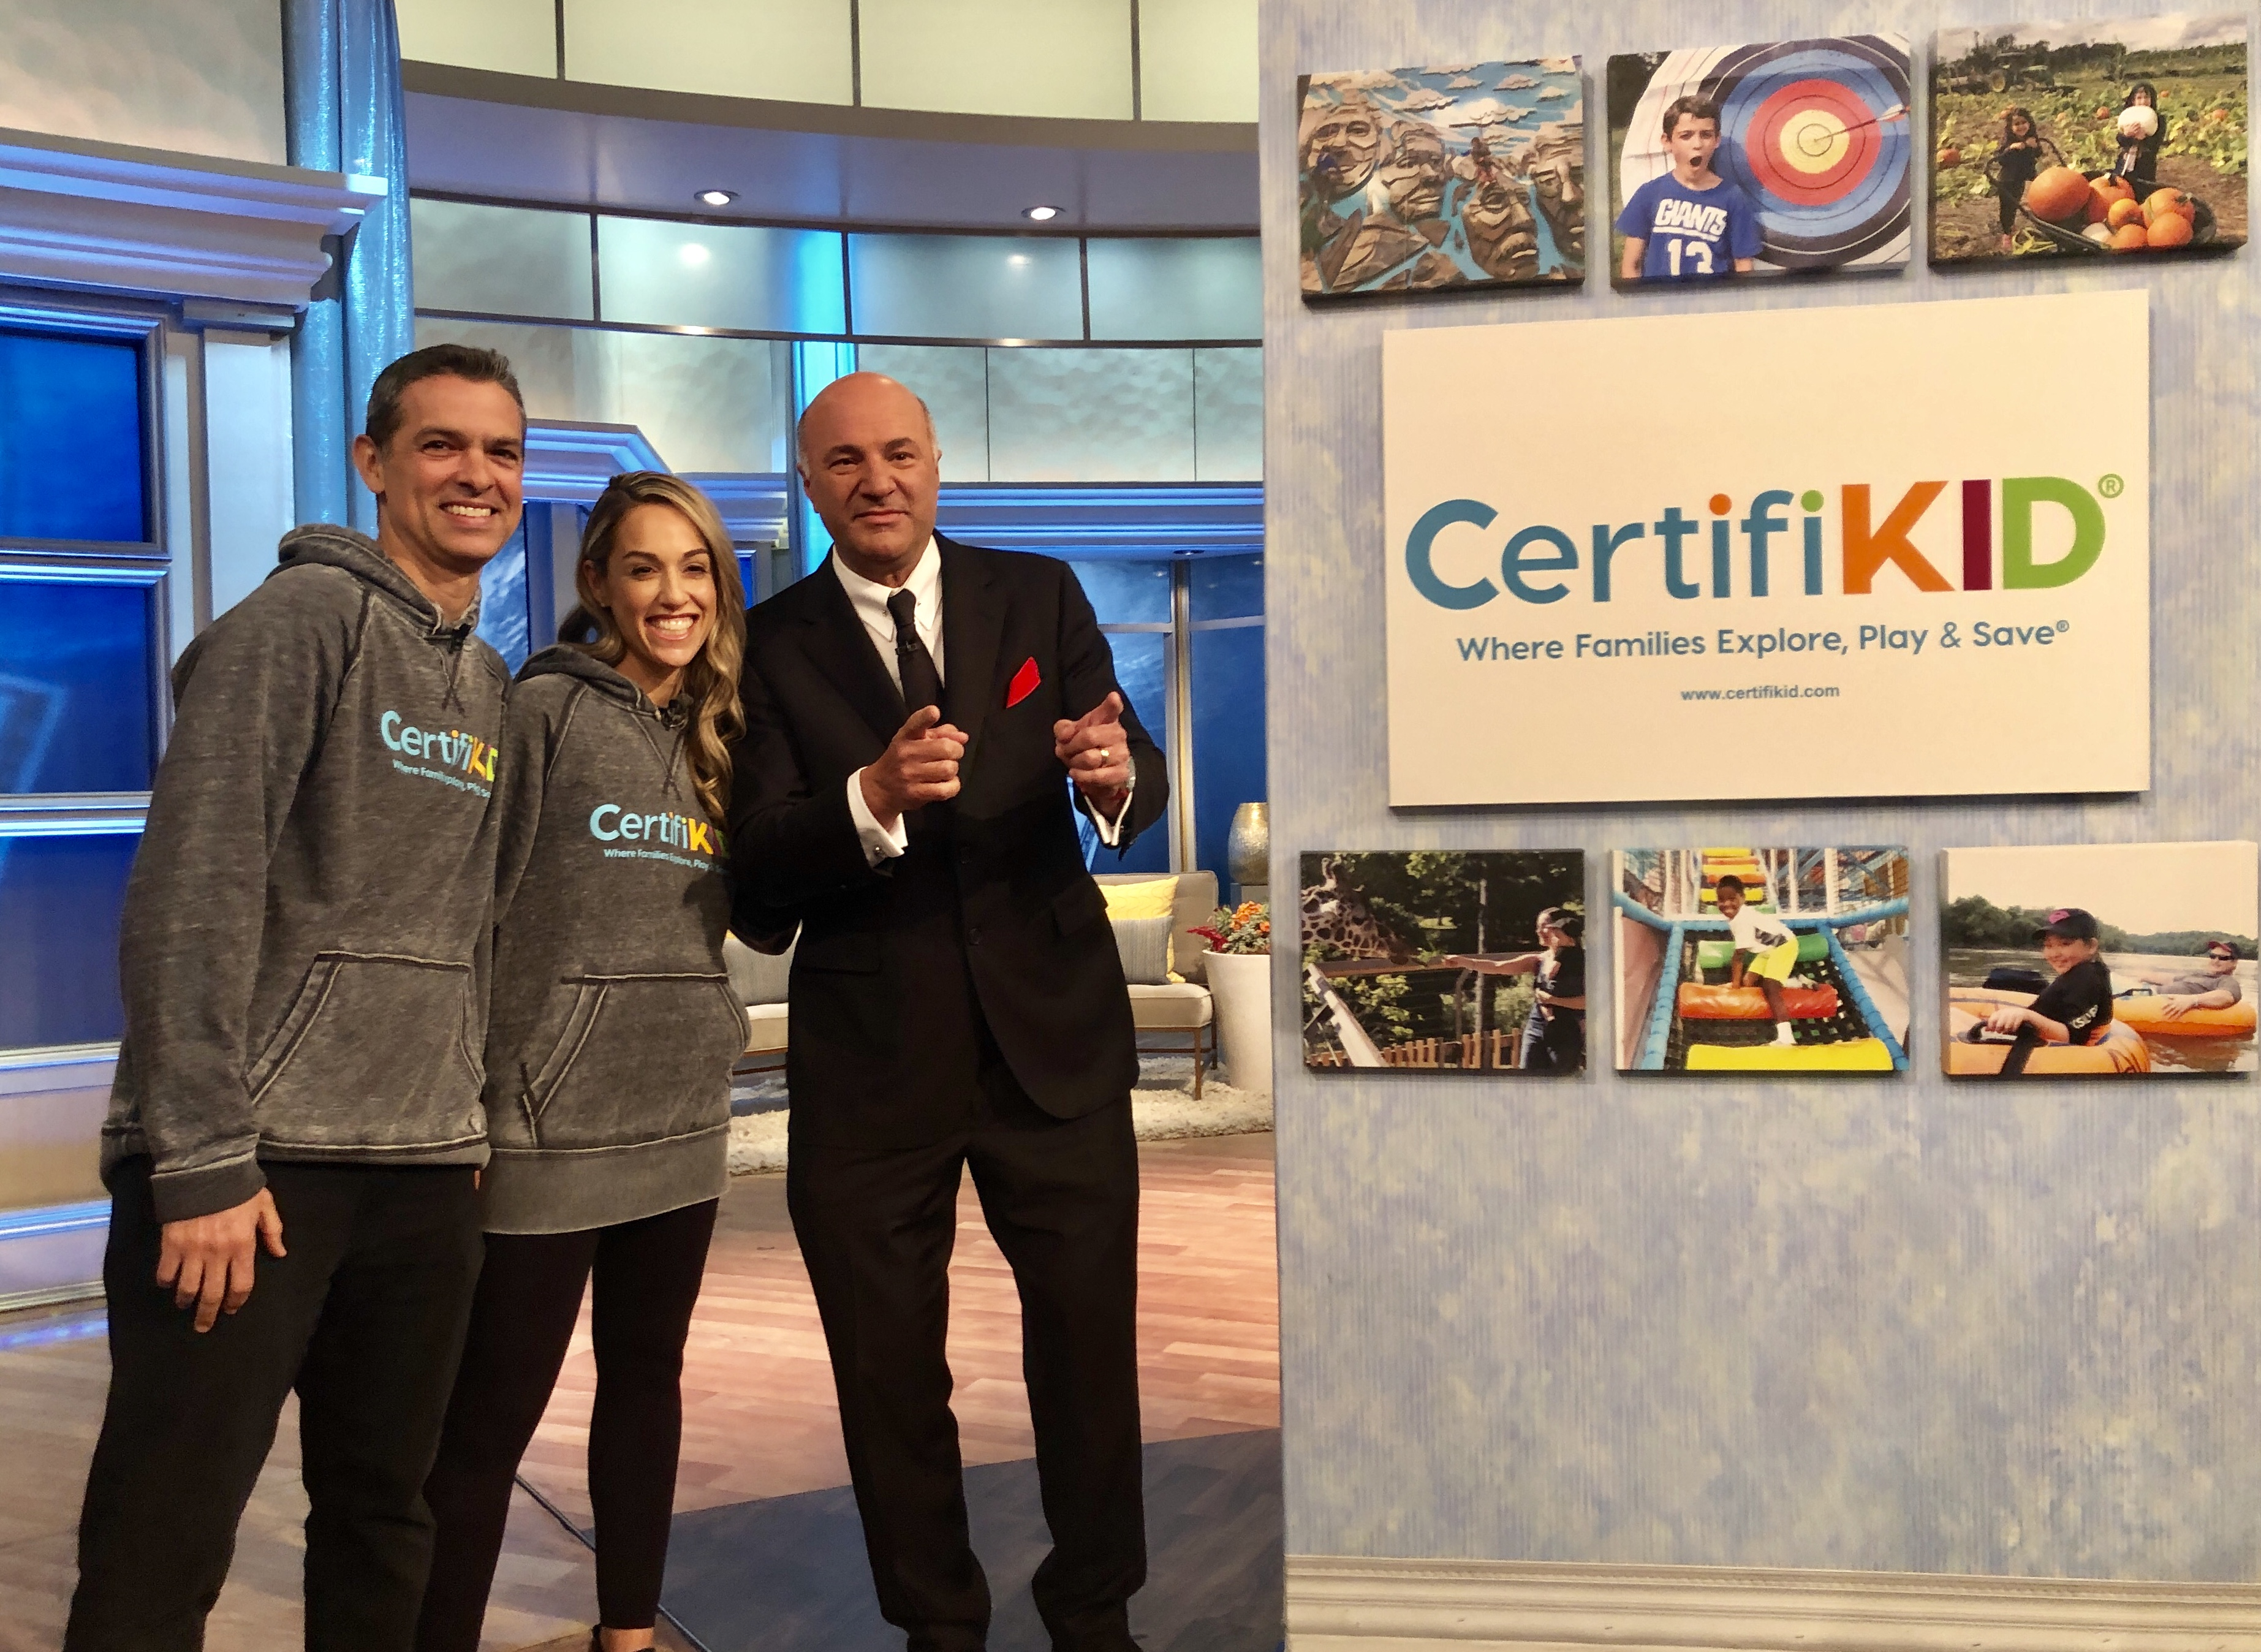 CertifiKID The View Kevin O'Leary